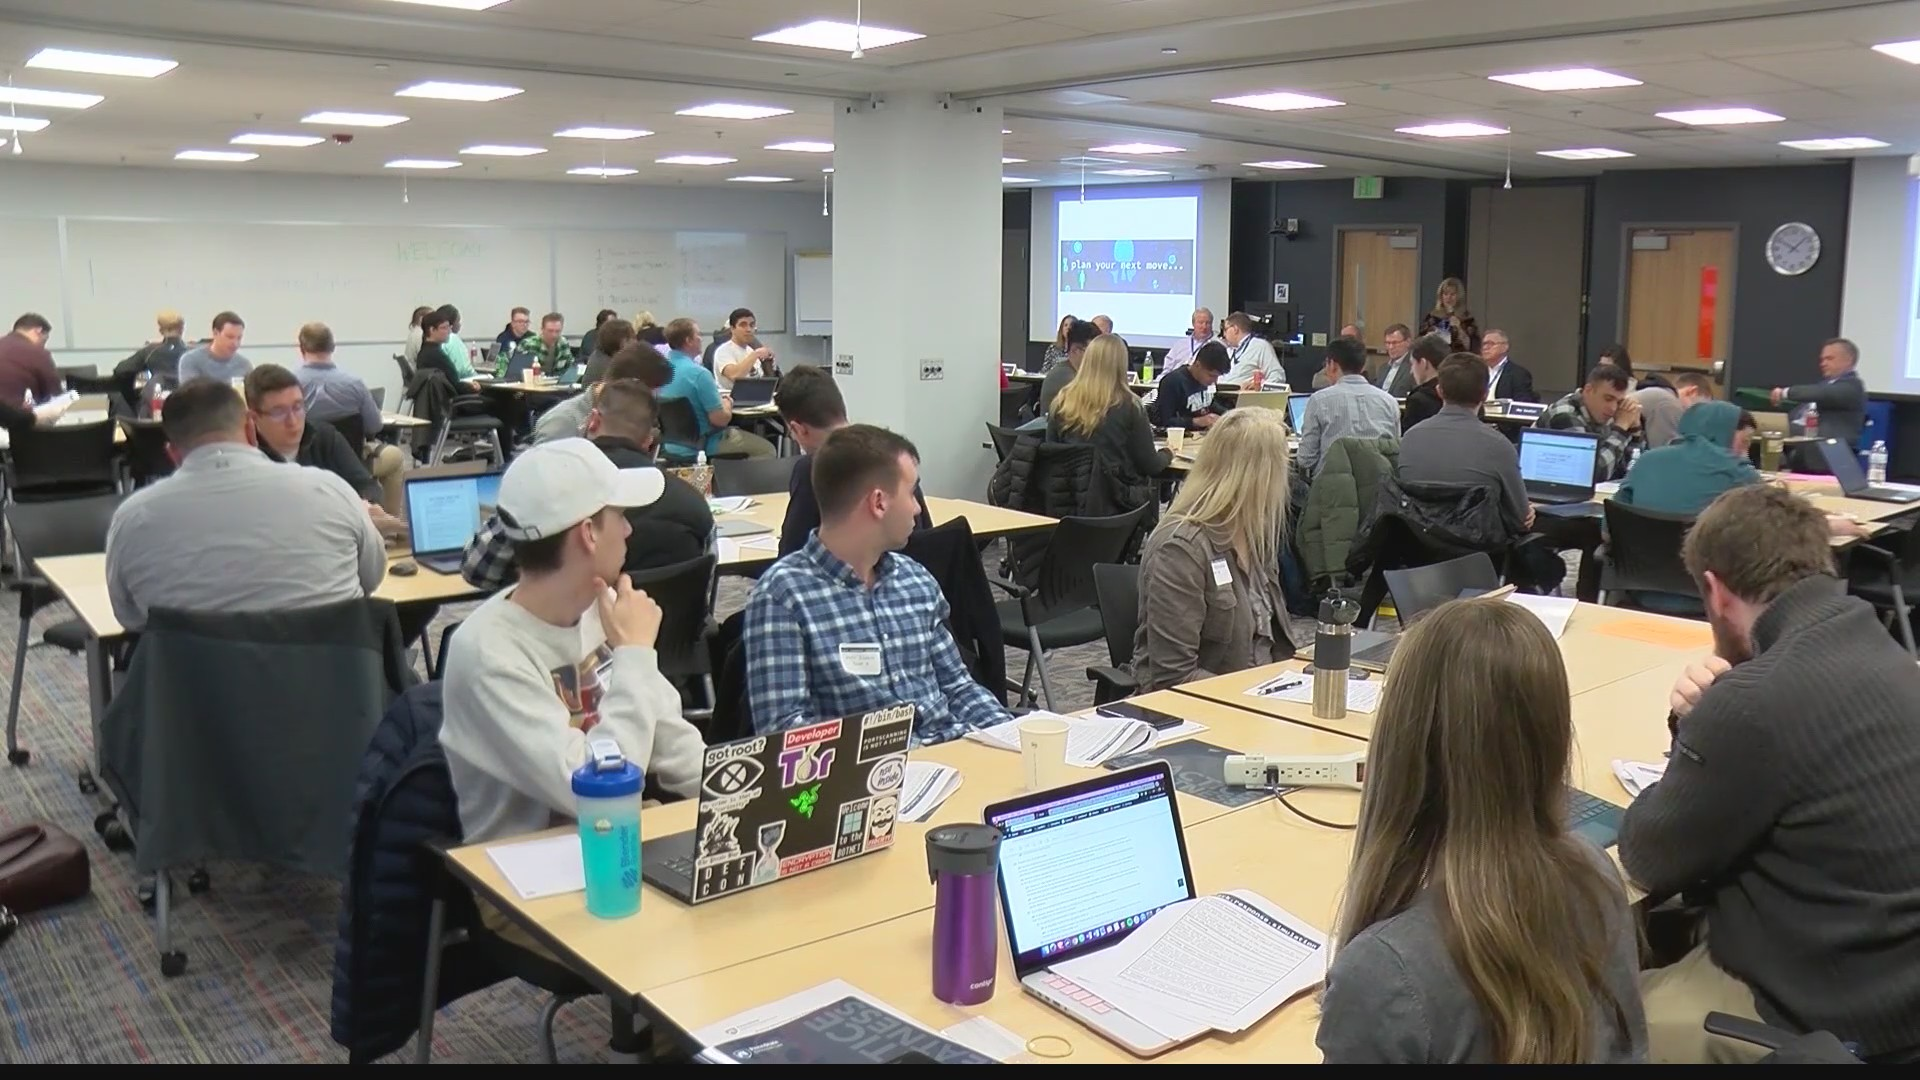 How should an organization respond when they're hacked? PSU Students learn during simulation